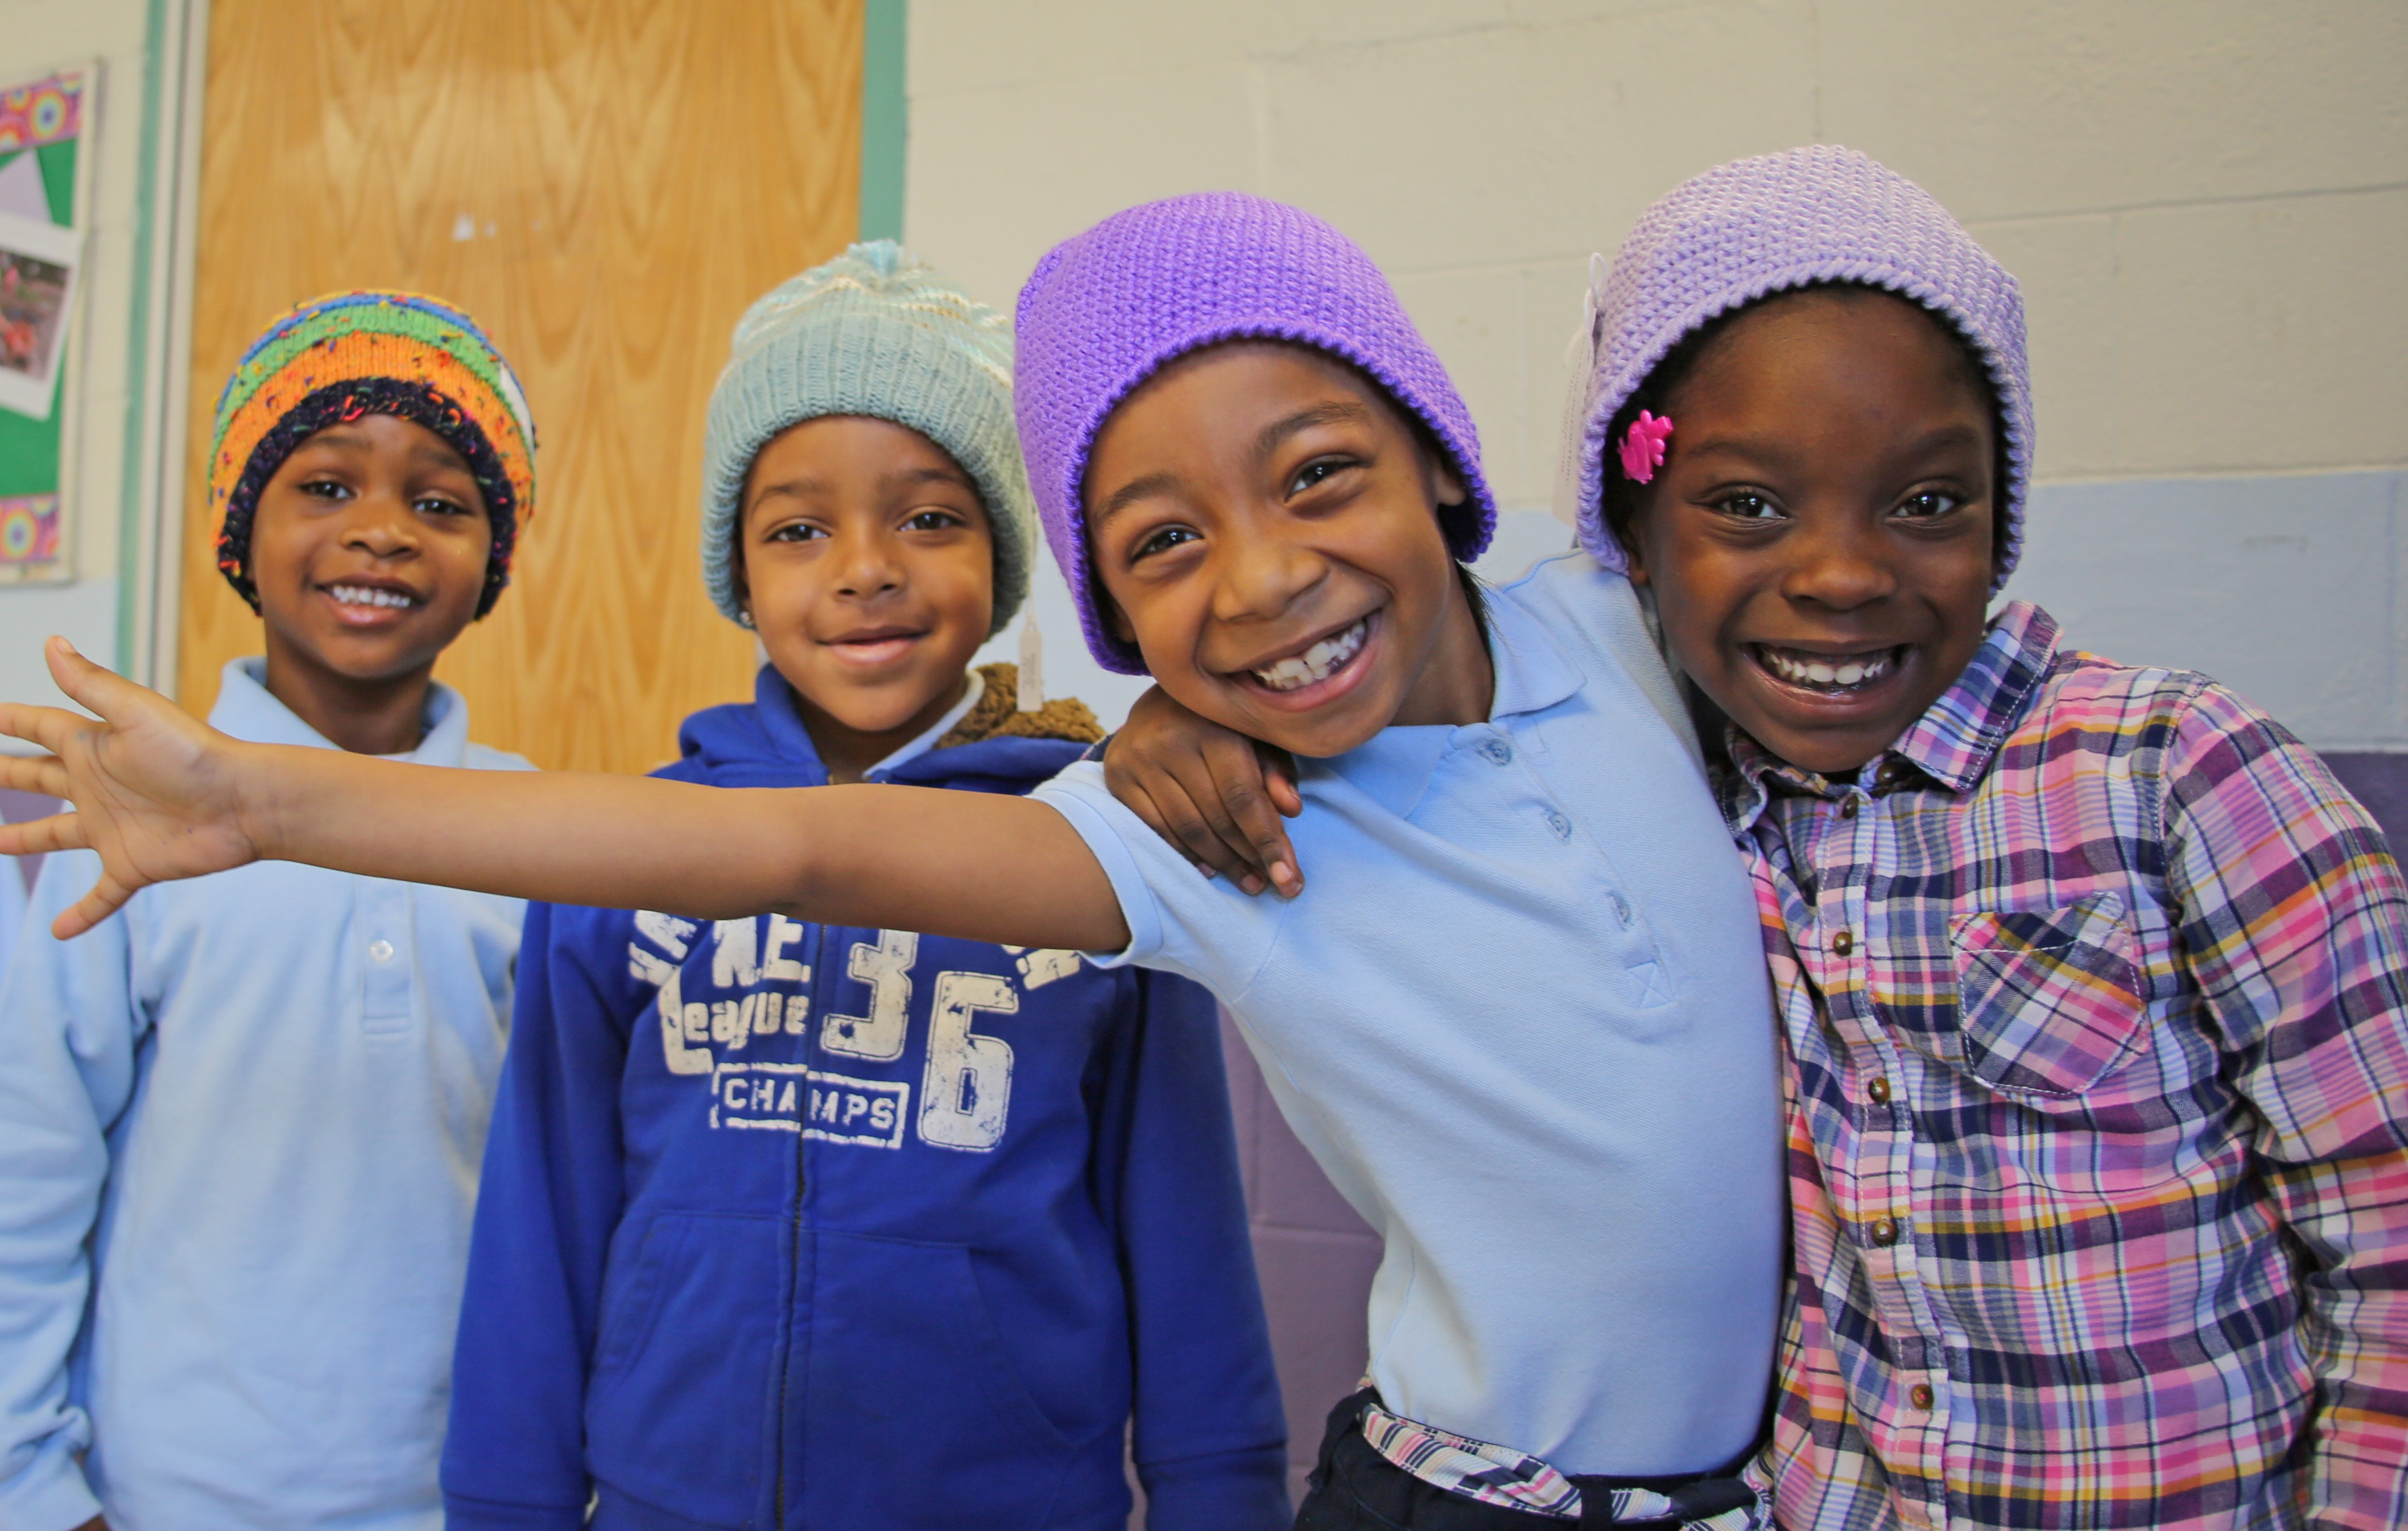 Tobin Elementary School students enjoy their new knit caps.